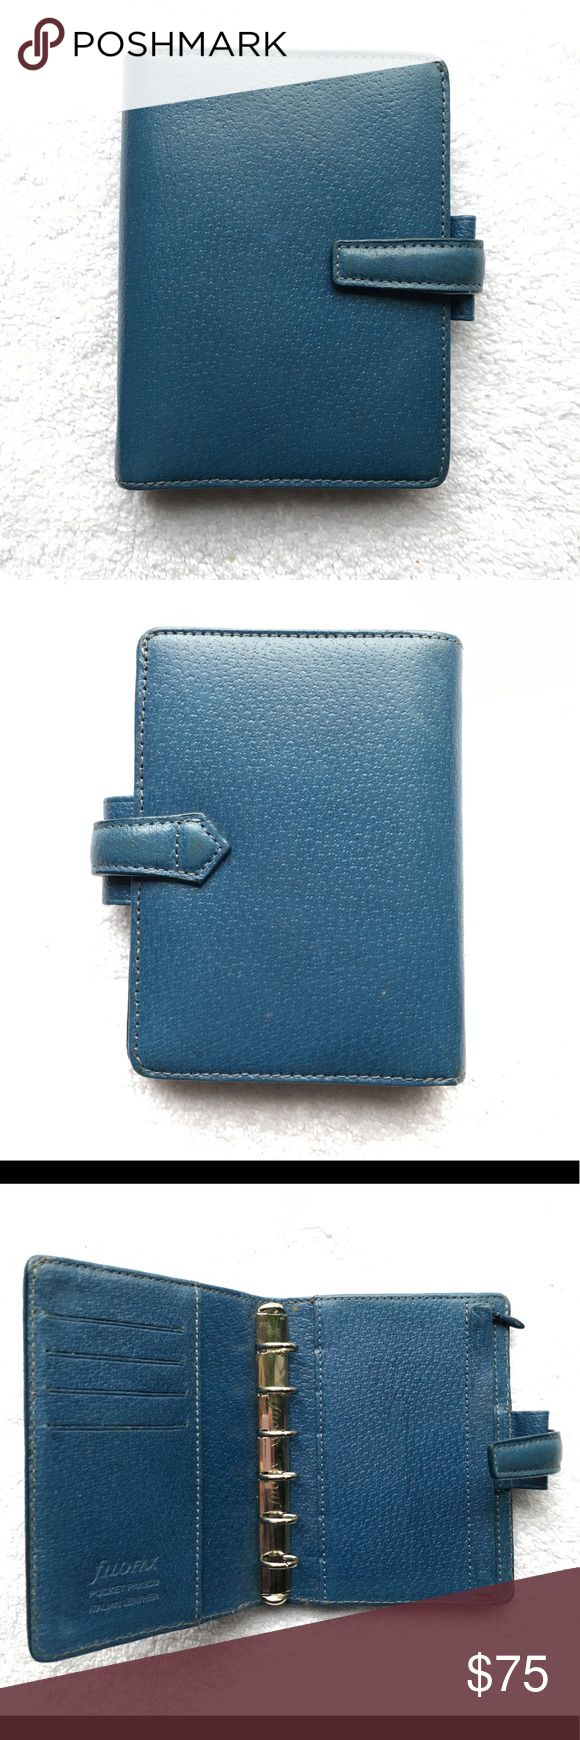 FILOFAX Blue Pocket Pimlico Planner Agenda Wallet FILOFAX Blue Pocket Pimlico Planner Agenda Wallet - Excelkent Gently Used Condition! No visible wear  4 inches wide by 5 1/2 inches high by 1 inch deep  Four interior credit card slots, one interior slab pocket, one enters a pocket, one large back interior money and paper area. Six ring binder  15mm Ring Size Filofax Bags Wallets